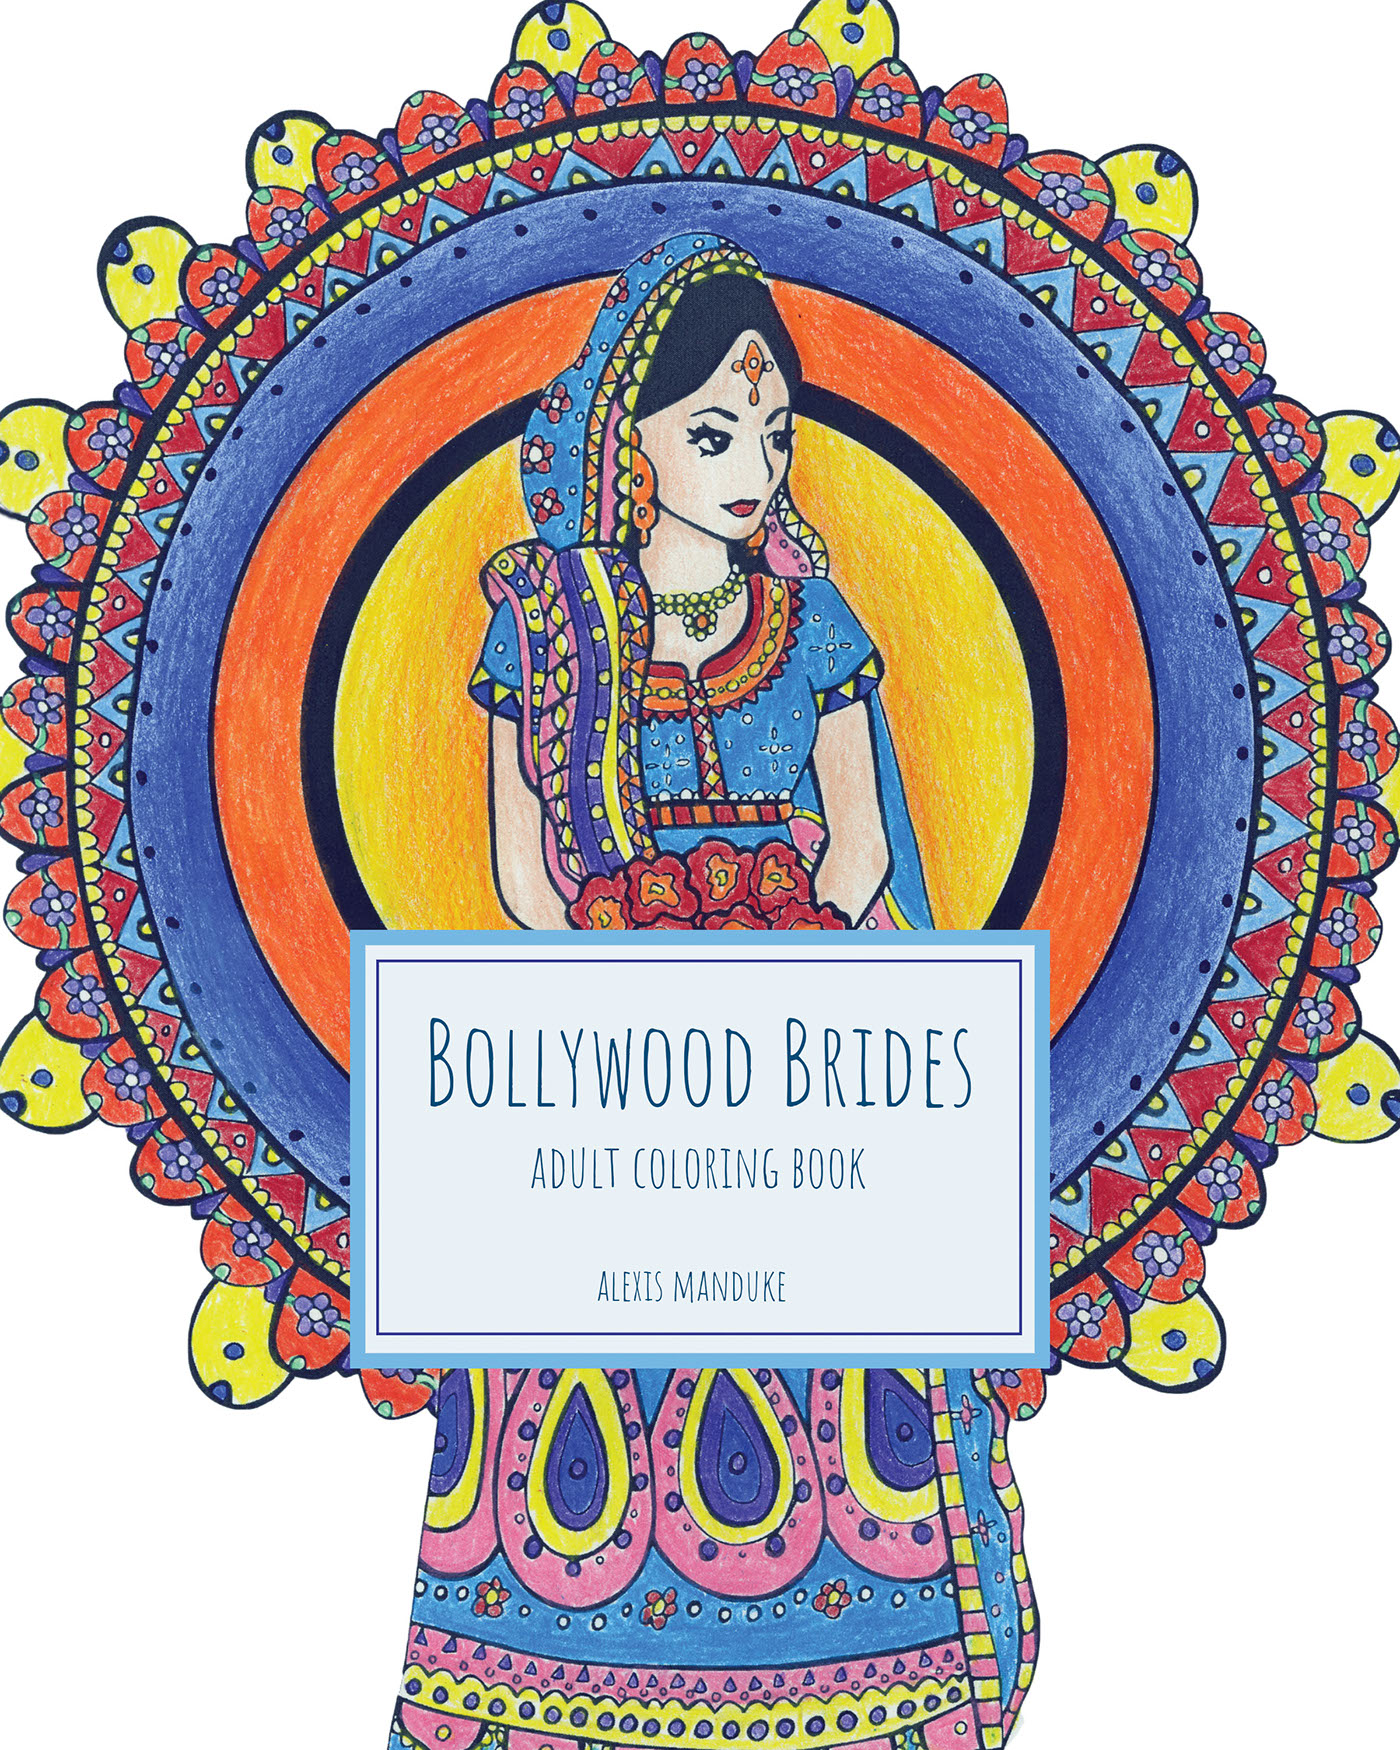 bollywood brides coloring book for adults on behance